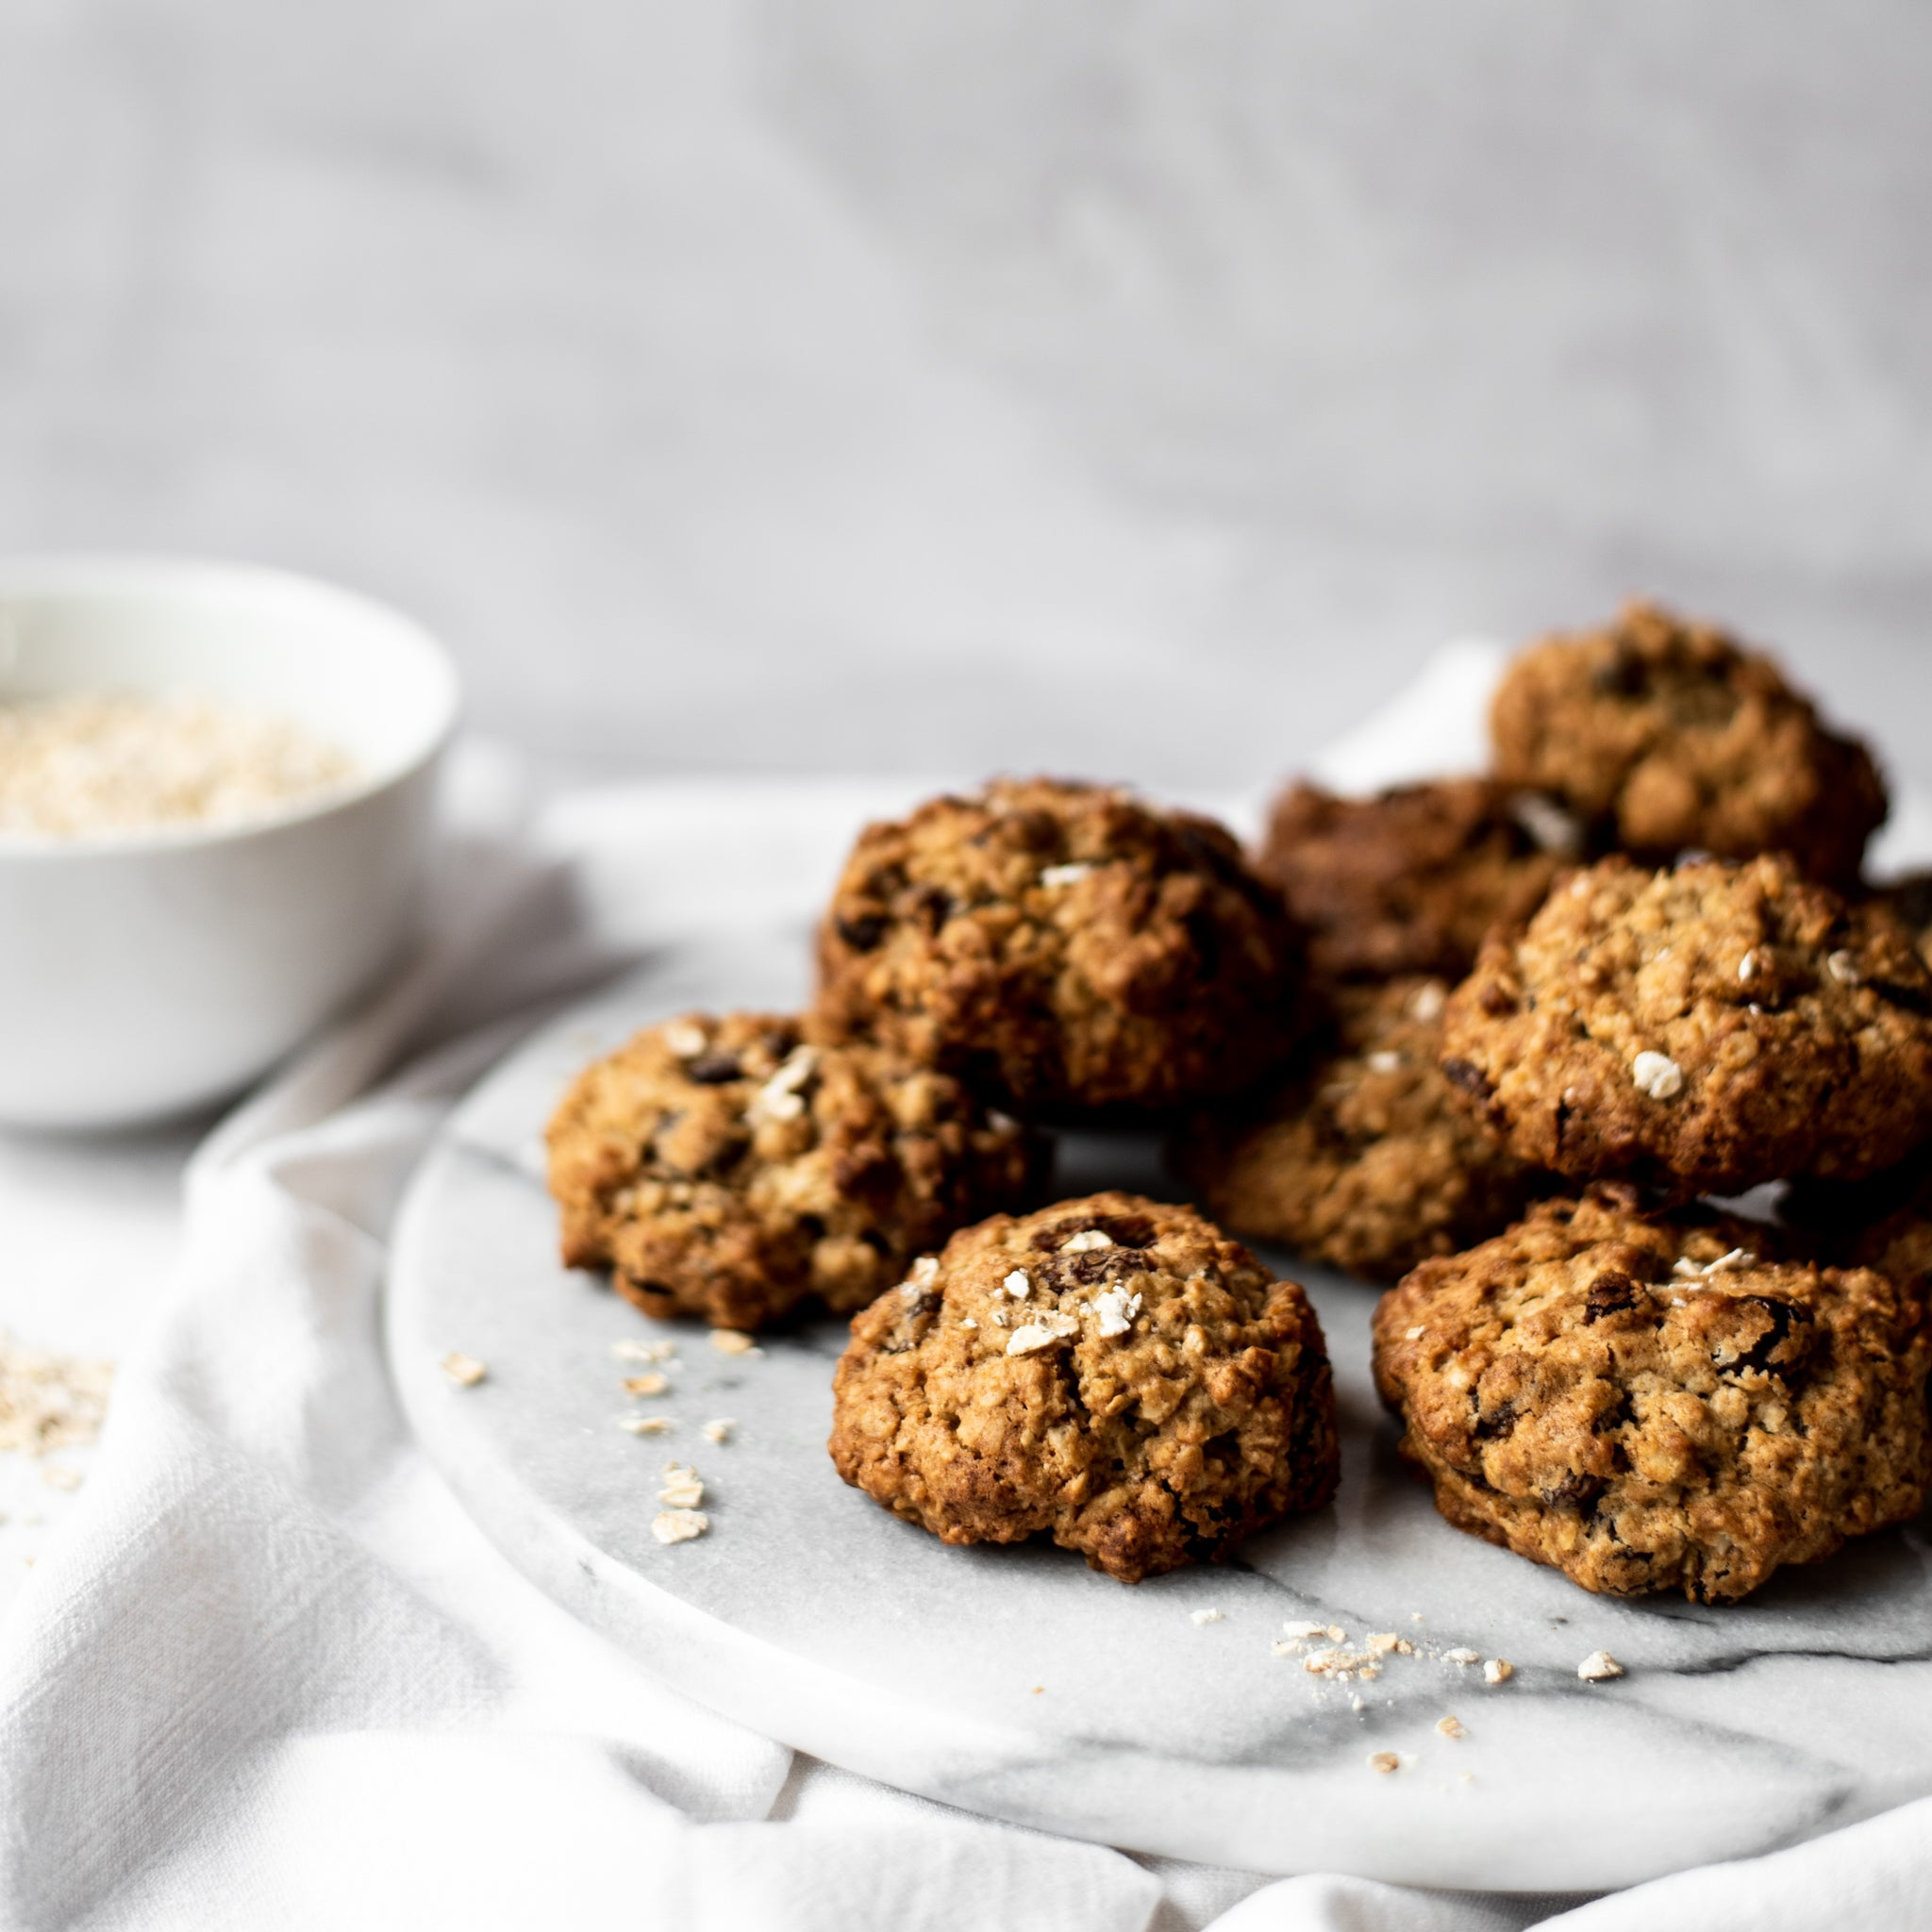 Oatmeal-Raisin-Cookies-SQUARE-4.jpg